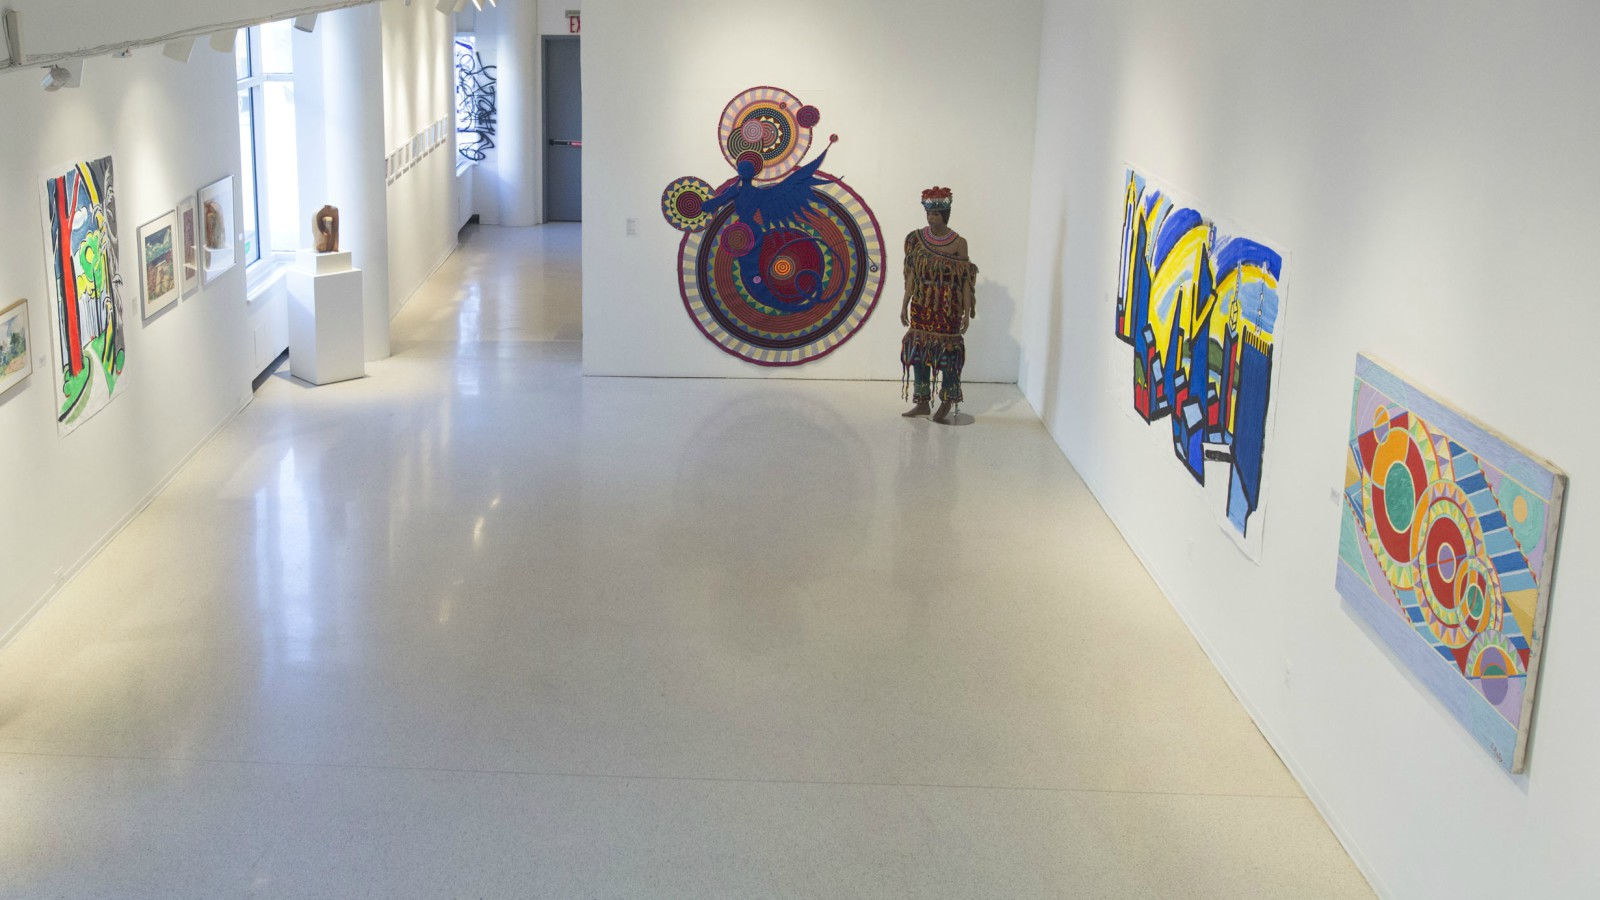 Things To Do In New York City - Chelsea Art Galleries